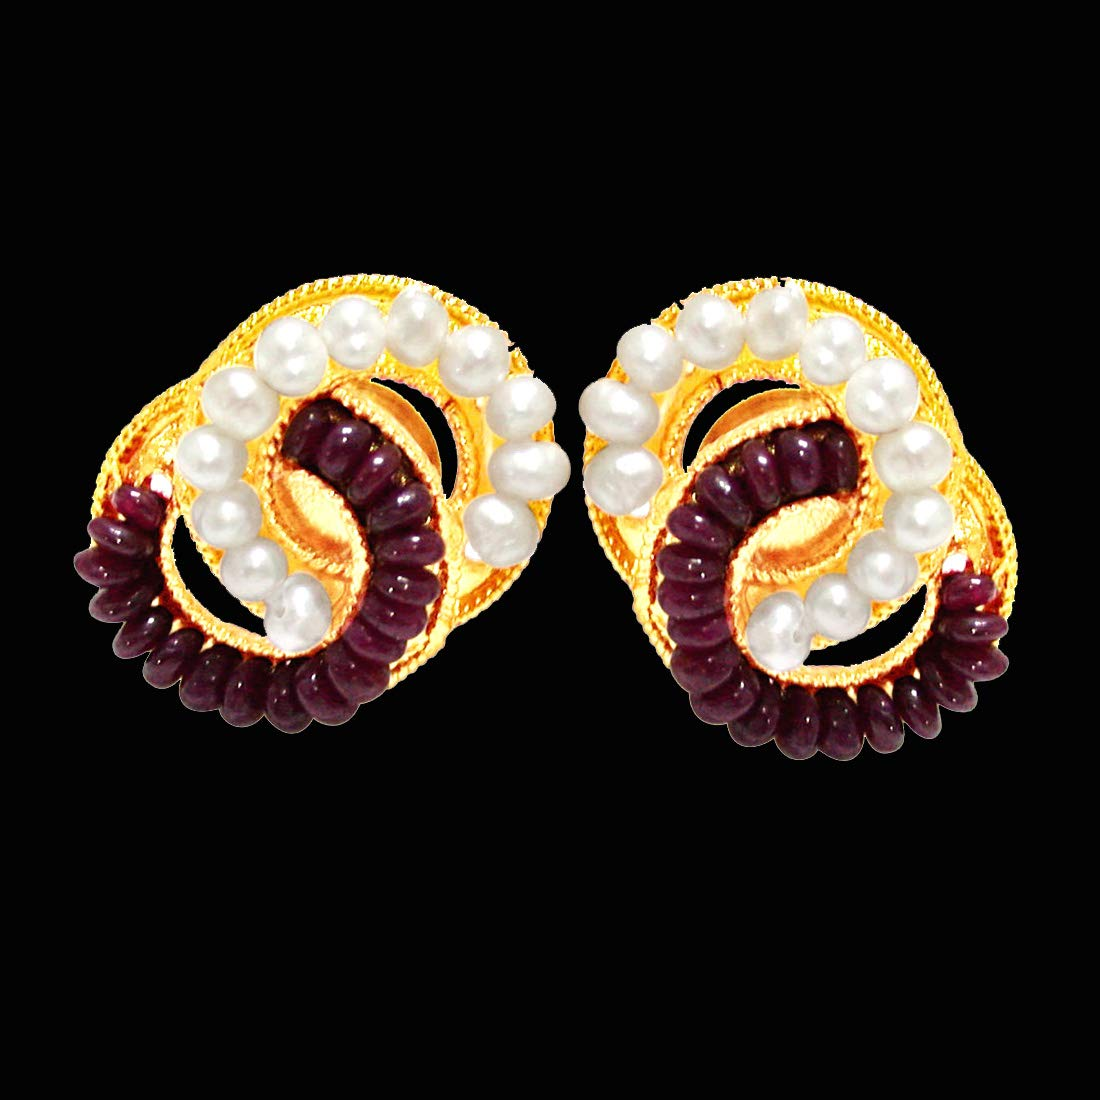 Luminous Surprise - Real Ruby Beads, Freshwater Pearls & Gold Plated Interlocked Earrings for Women (SE76)